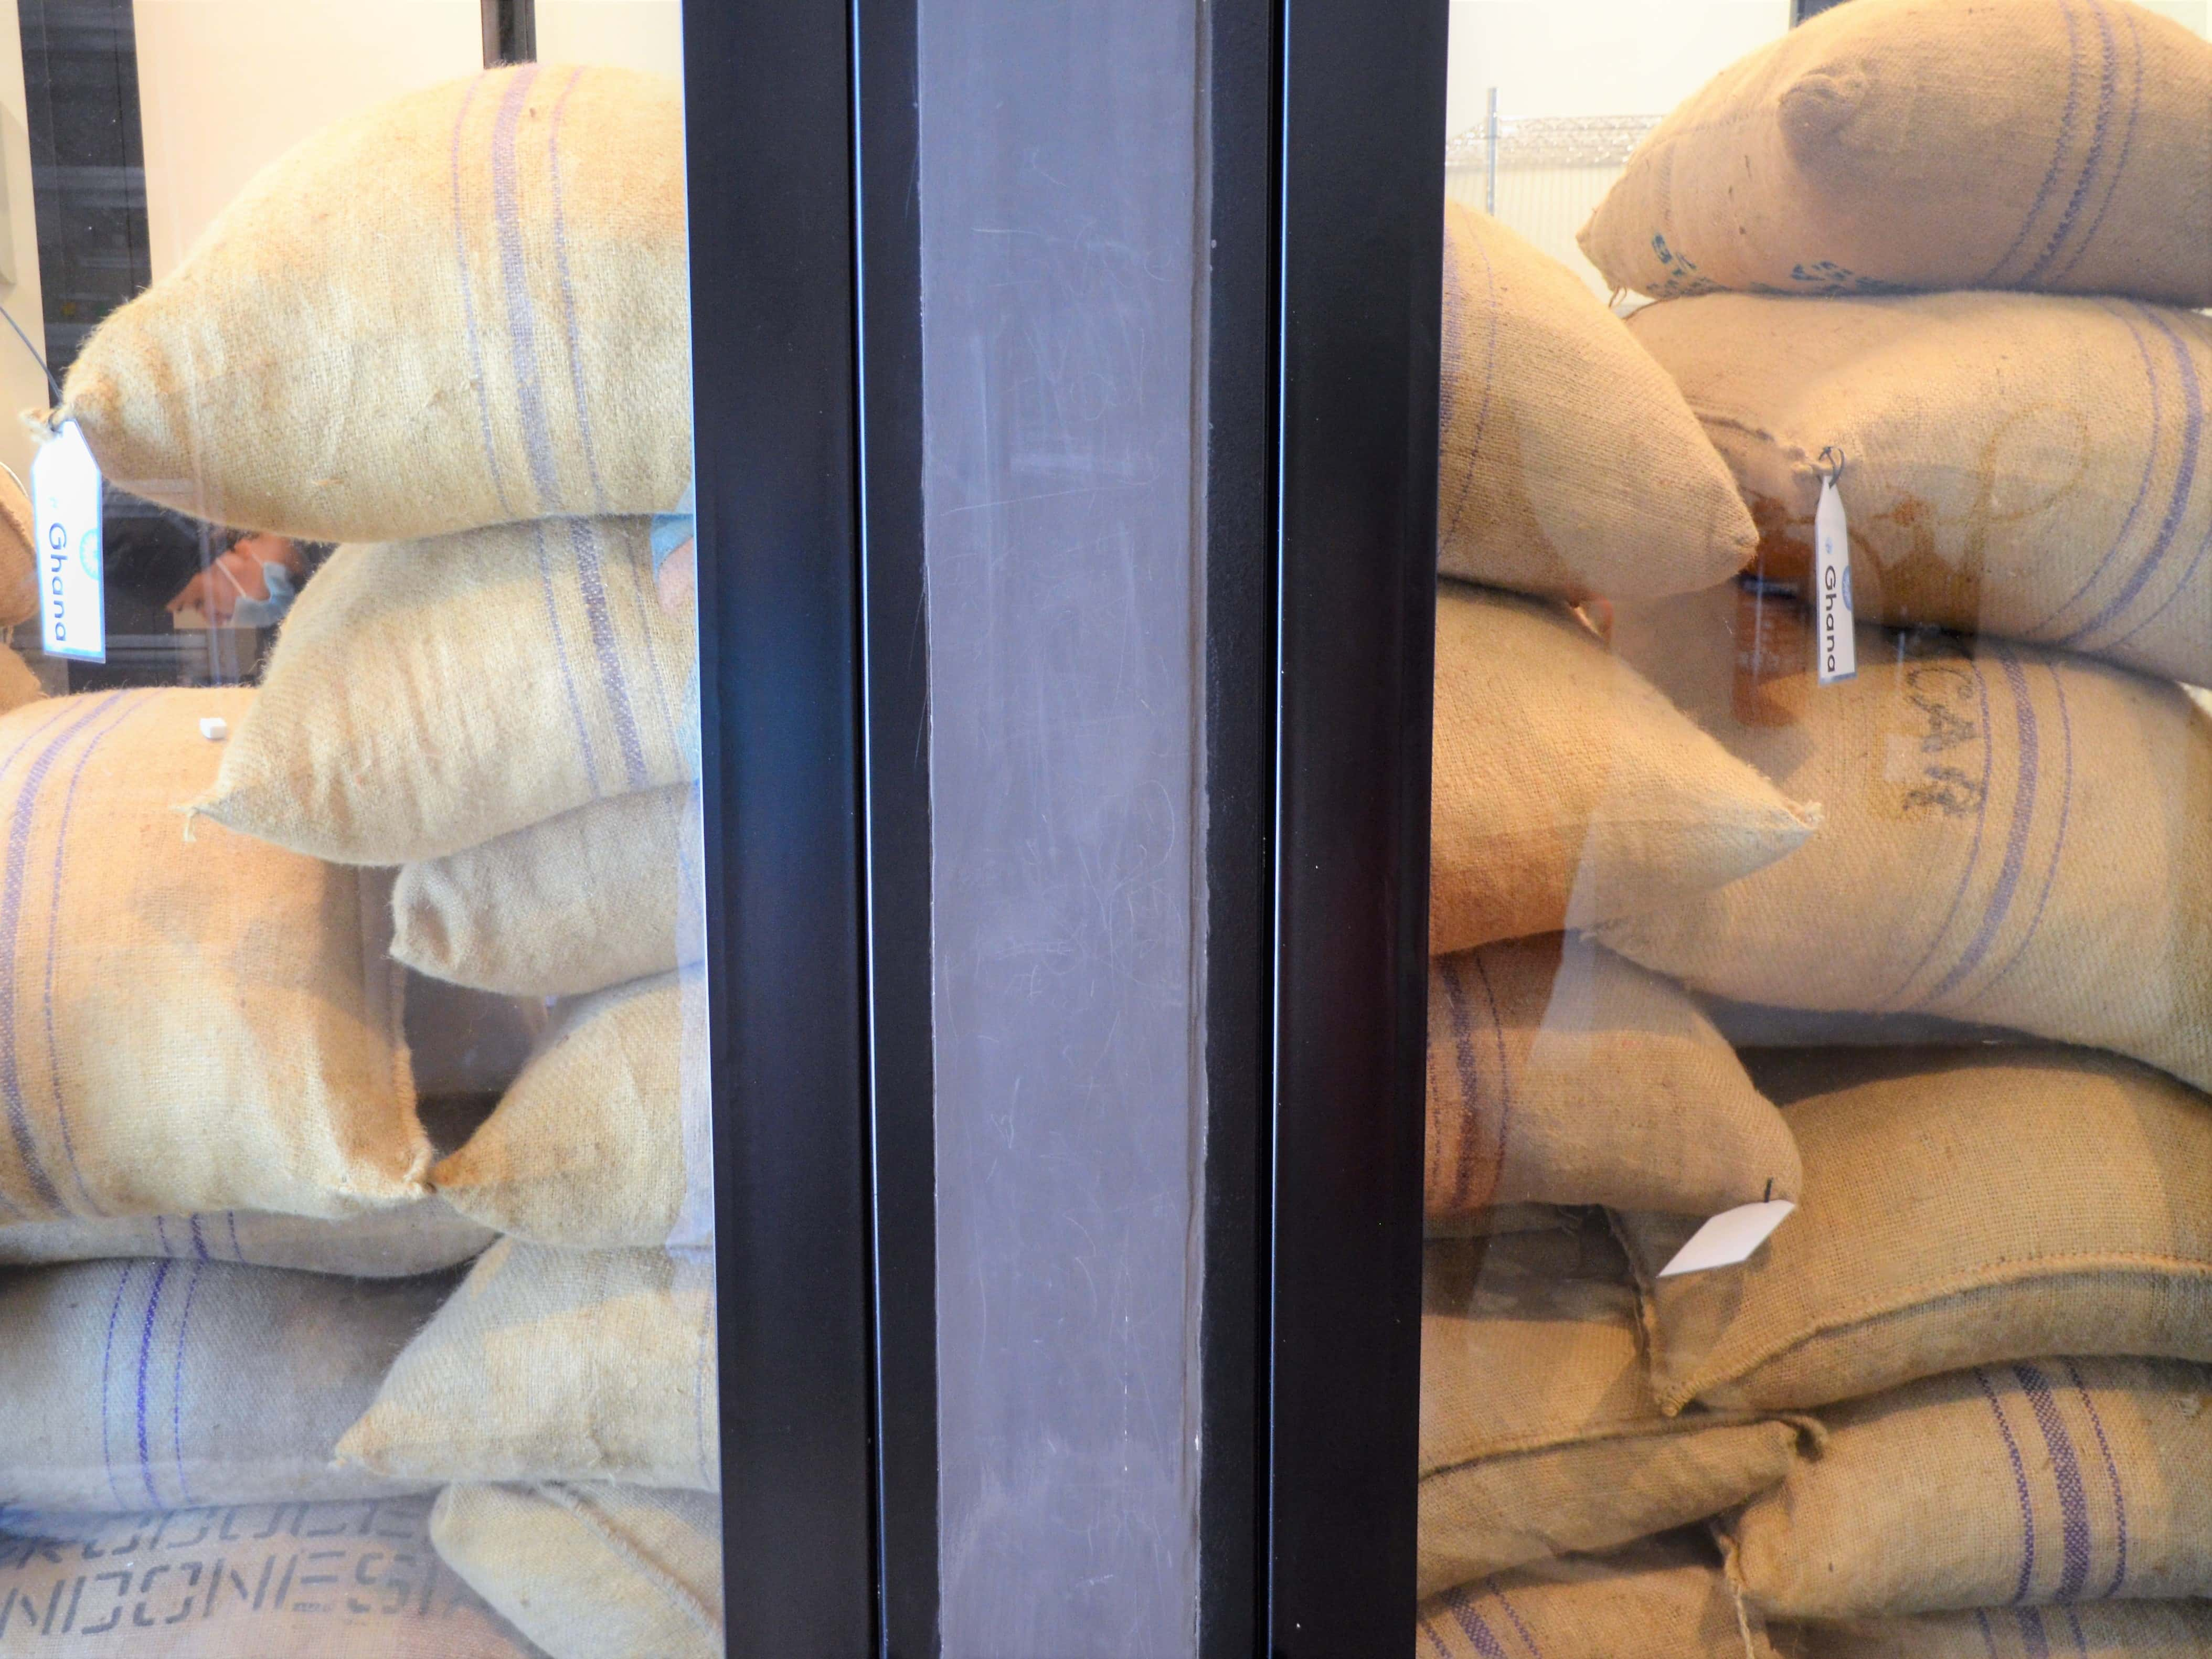 Bags of sole sourced cocoa beans